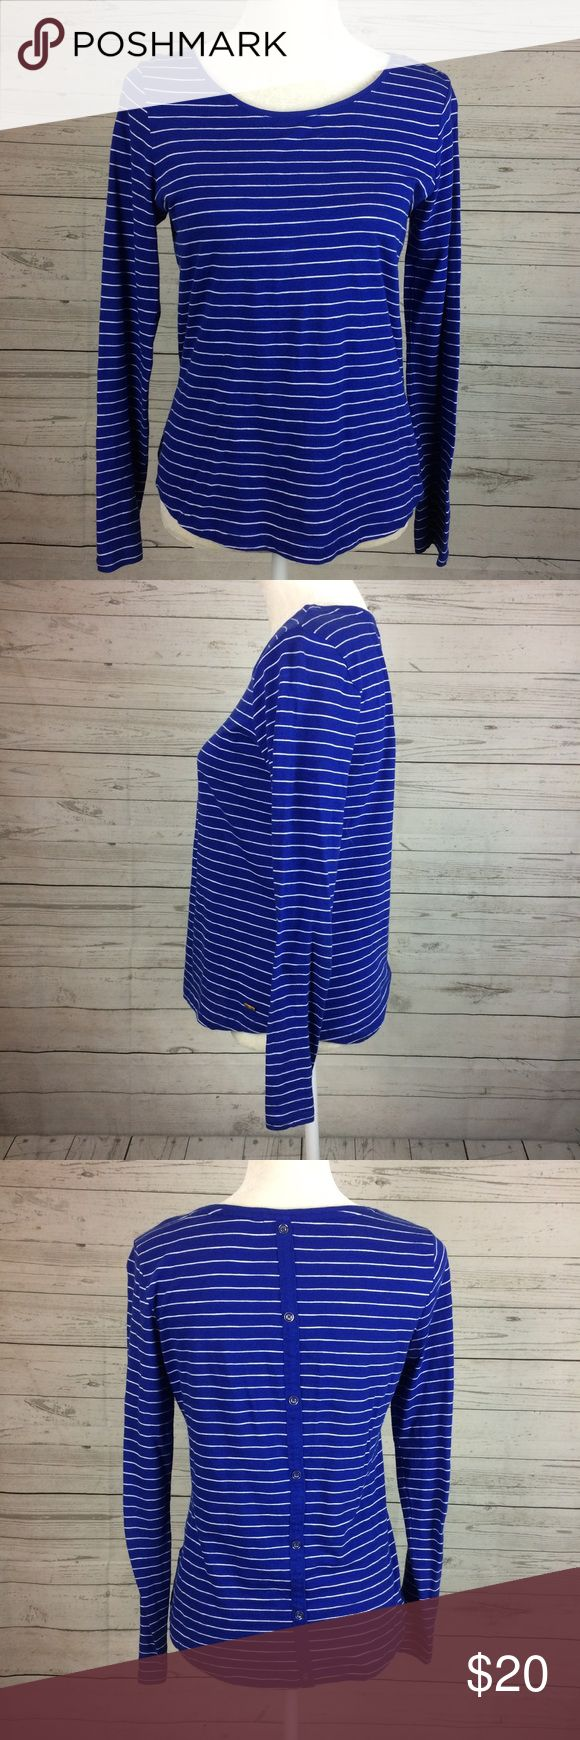 """Tommy Hilfiger Striped Nautical Long Sleeve Top S 24"""" length shoulder seam to bottom hem. 19"""" armpit to armpit. 25"""" sleeve length. Stretchy fabric. Care tag cut out. (T003) Tommy Hilfiger Tops Tees - Long Sleeve"""